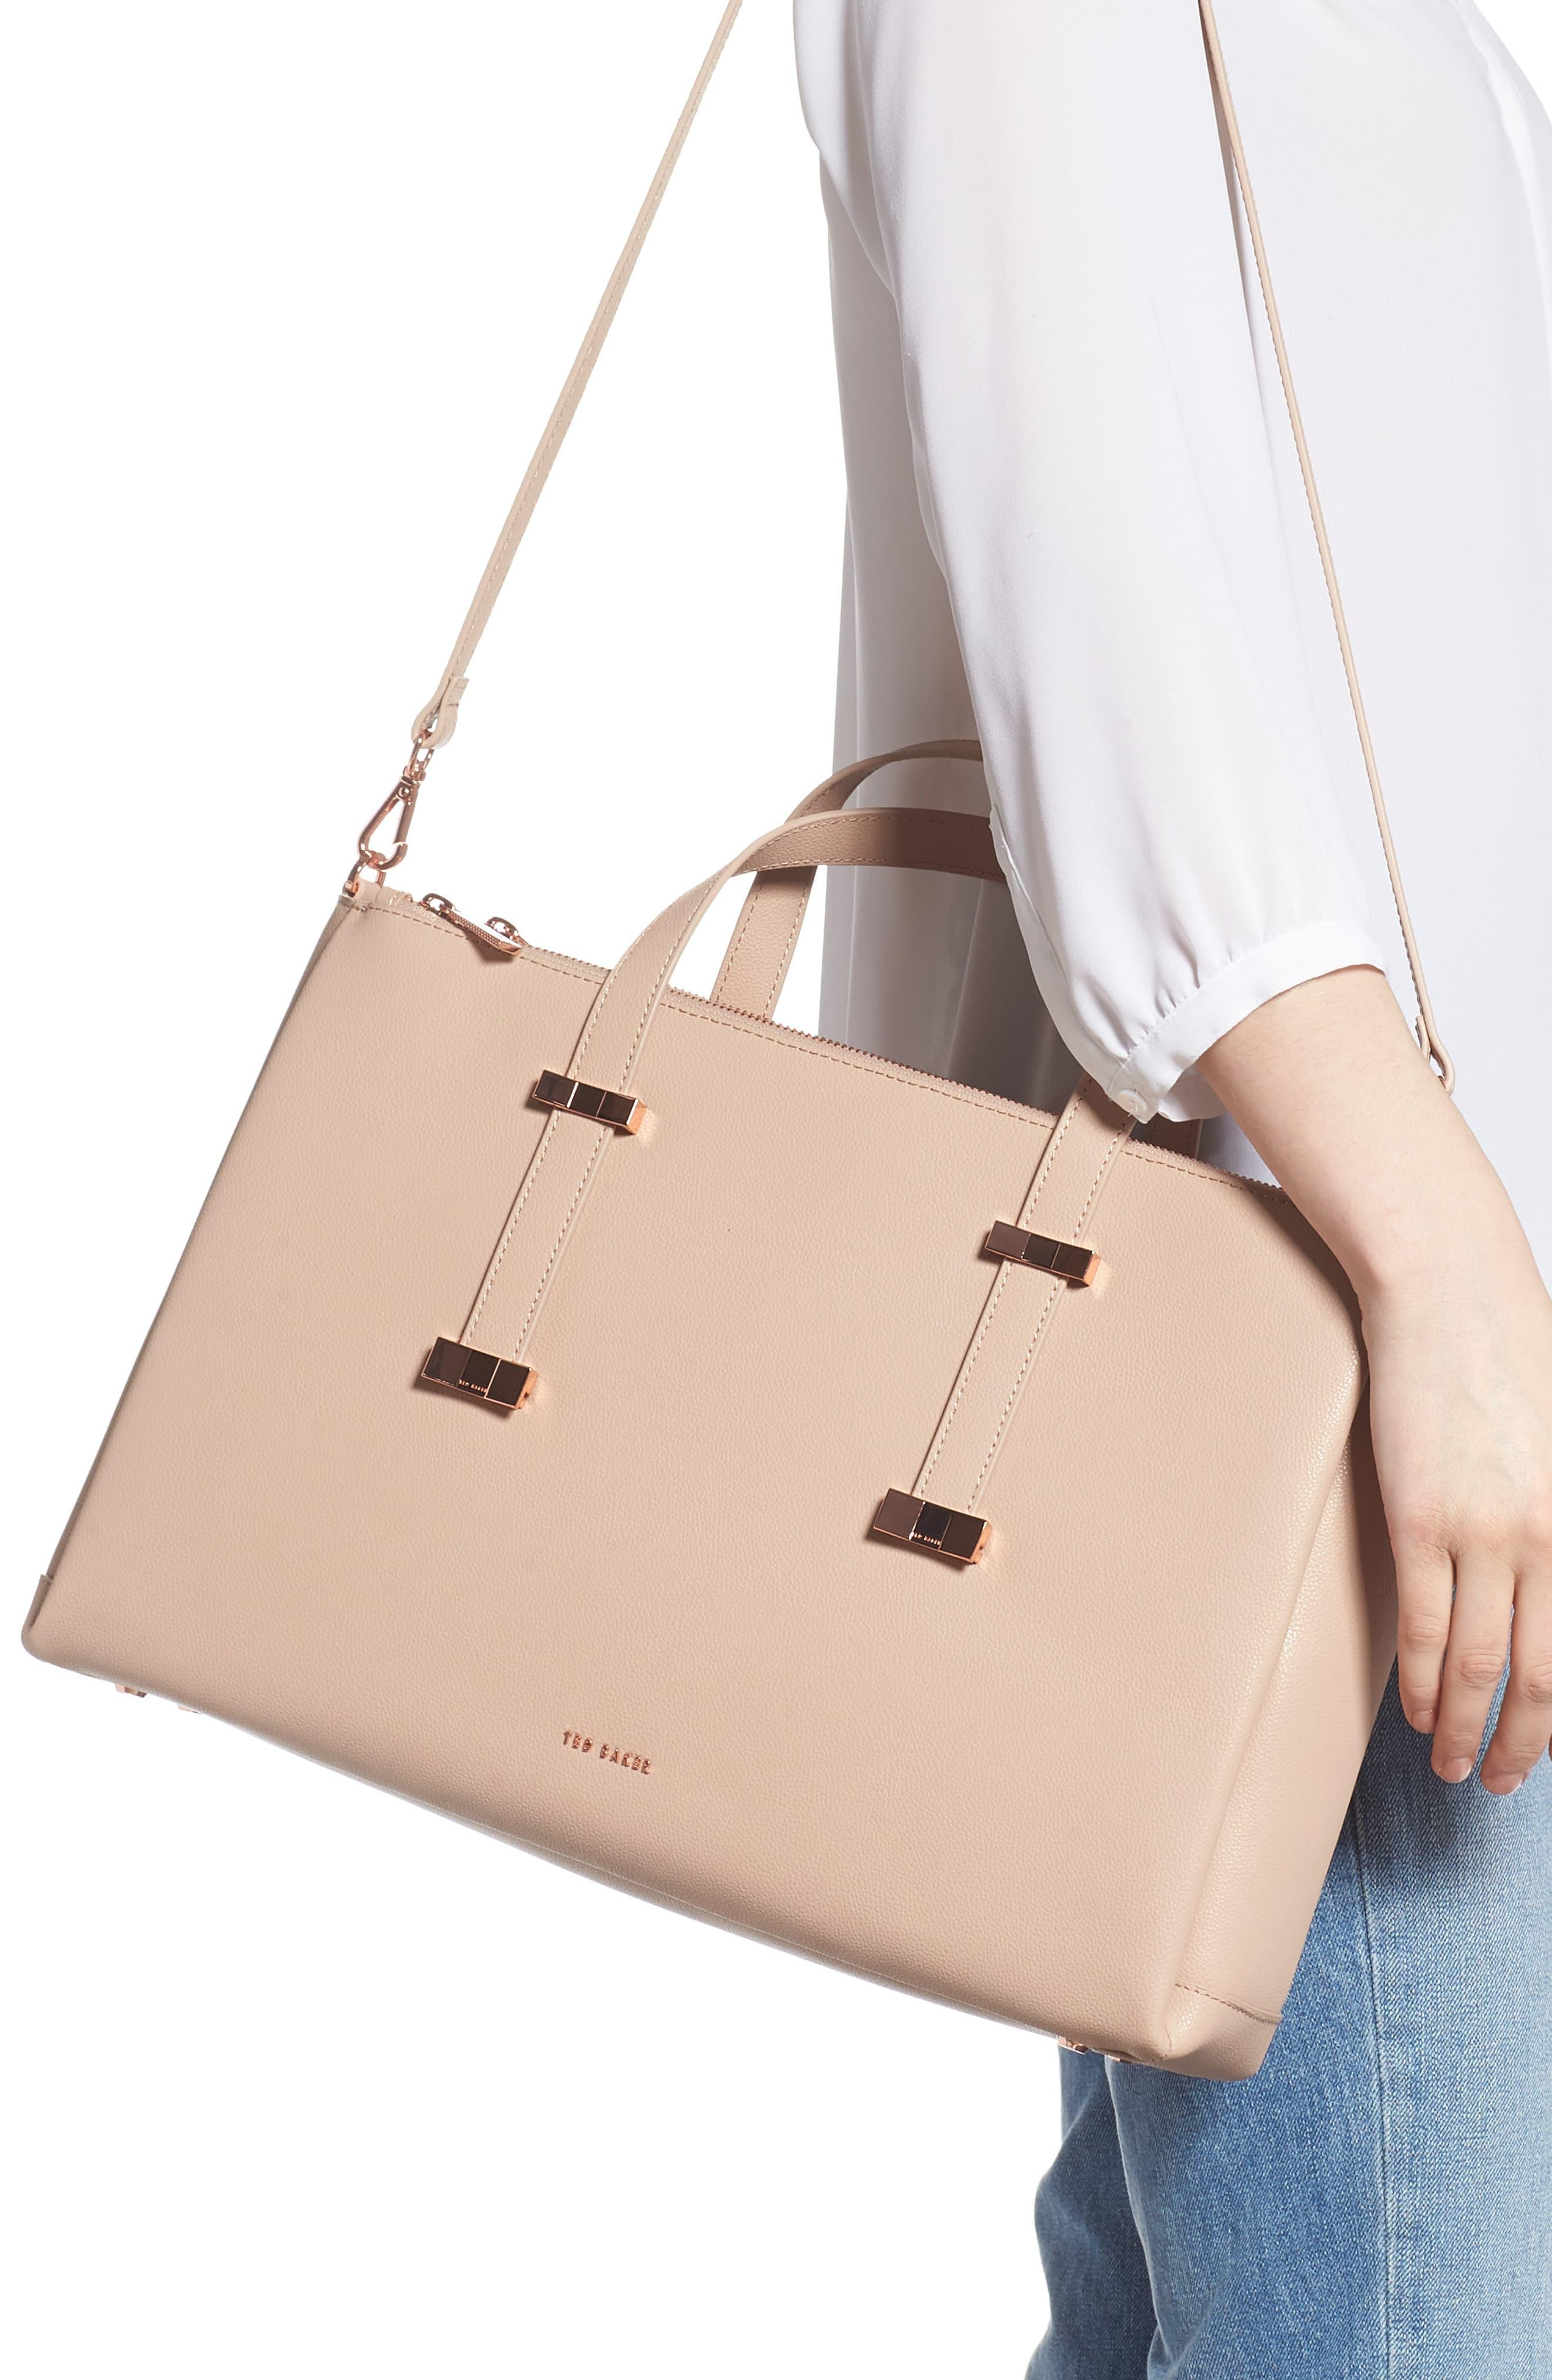 6c44a441a9 Ted Baker - Multicolor Juliea Leather Laptop Bag - Lyst. View fullscreen